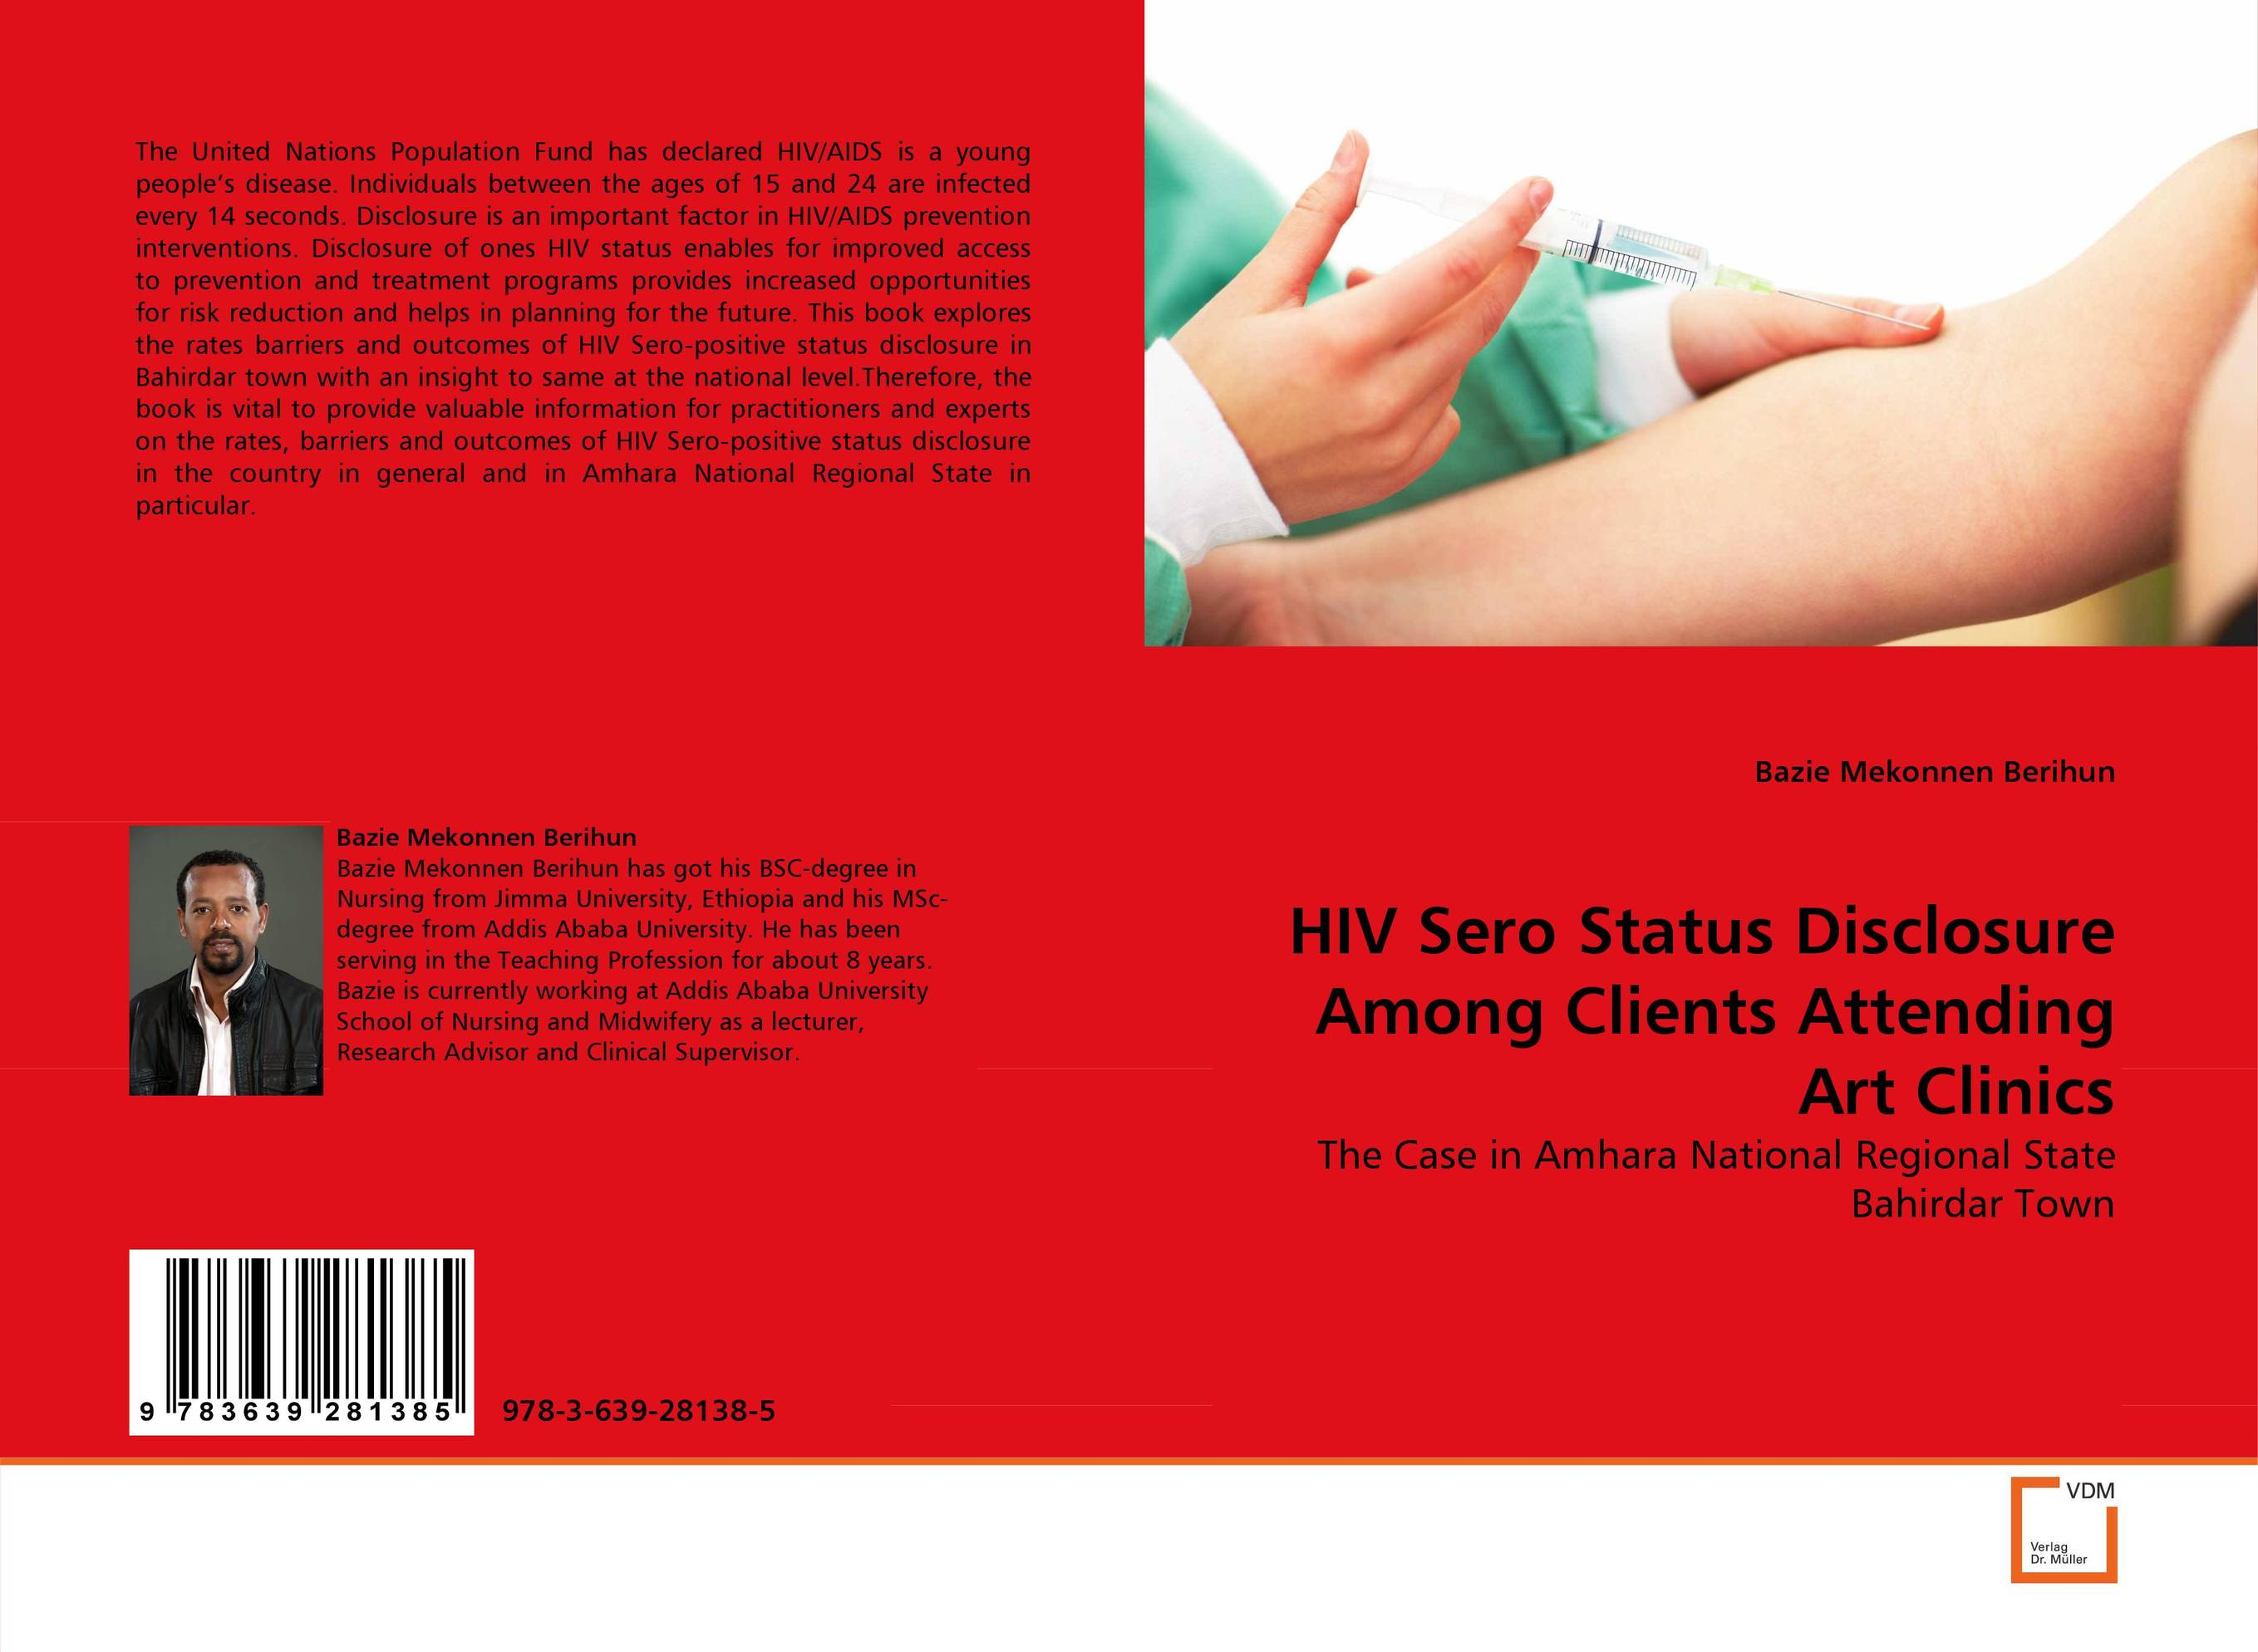 HIV Sero Status Disclosure Among Clients Attending Art Clinics купить